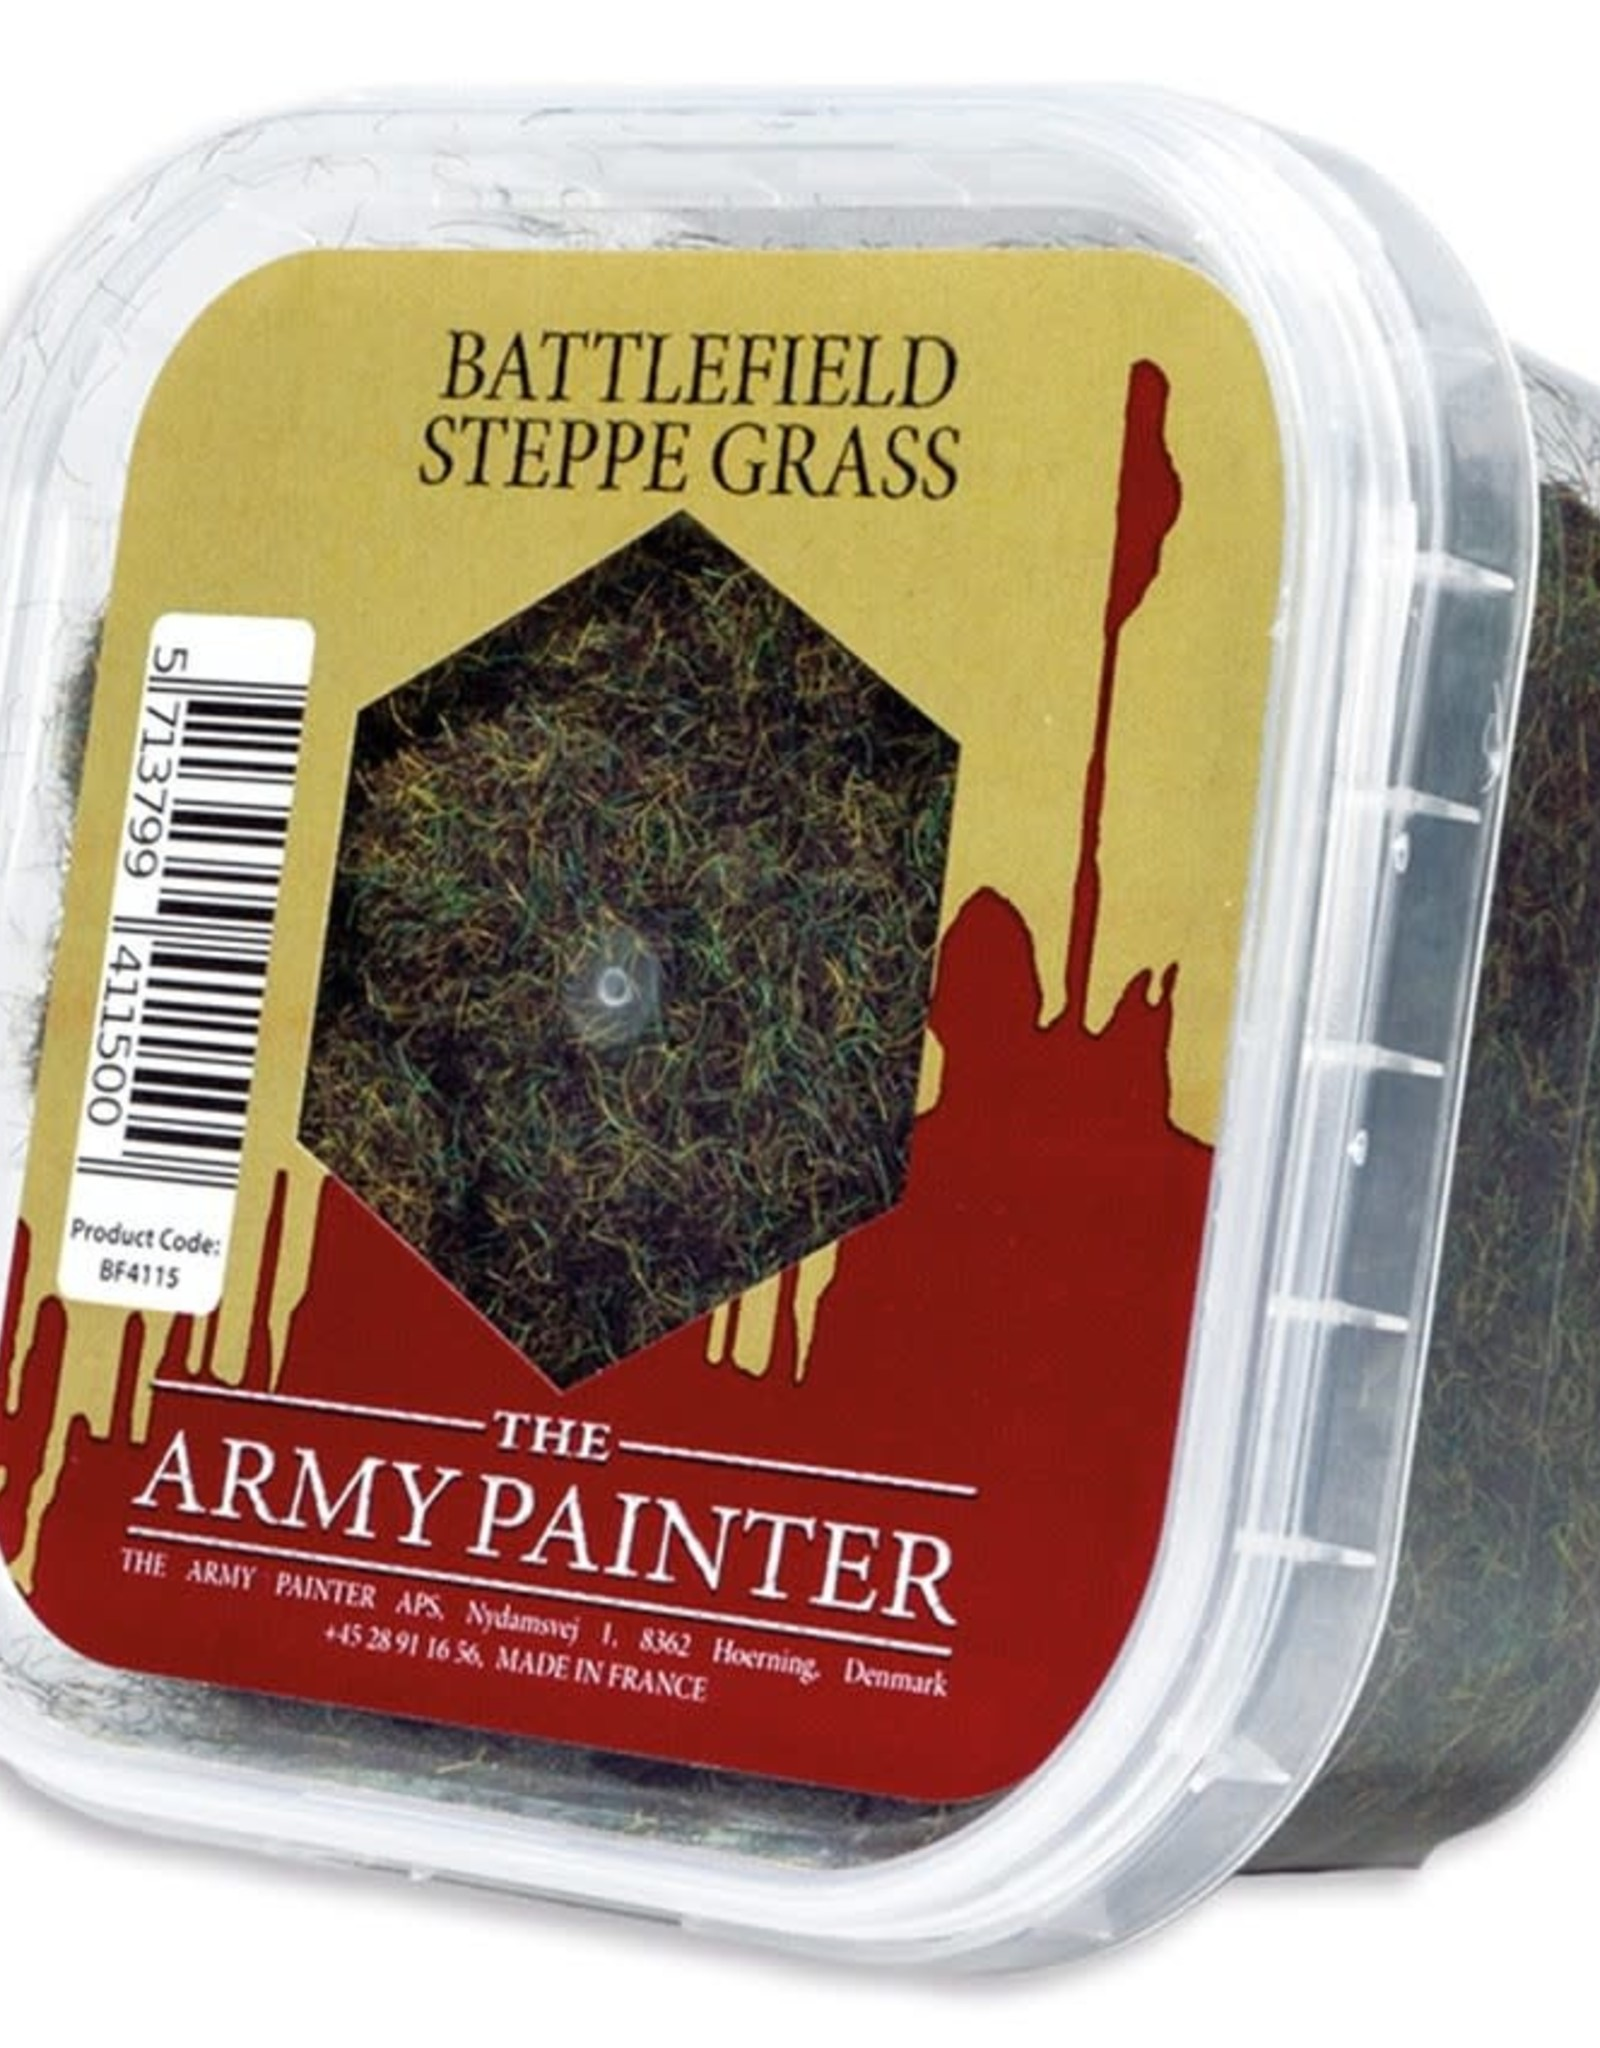 Battlefields: Battlefield Steppe Grass